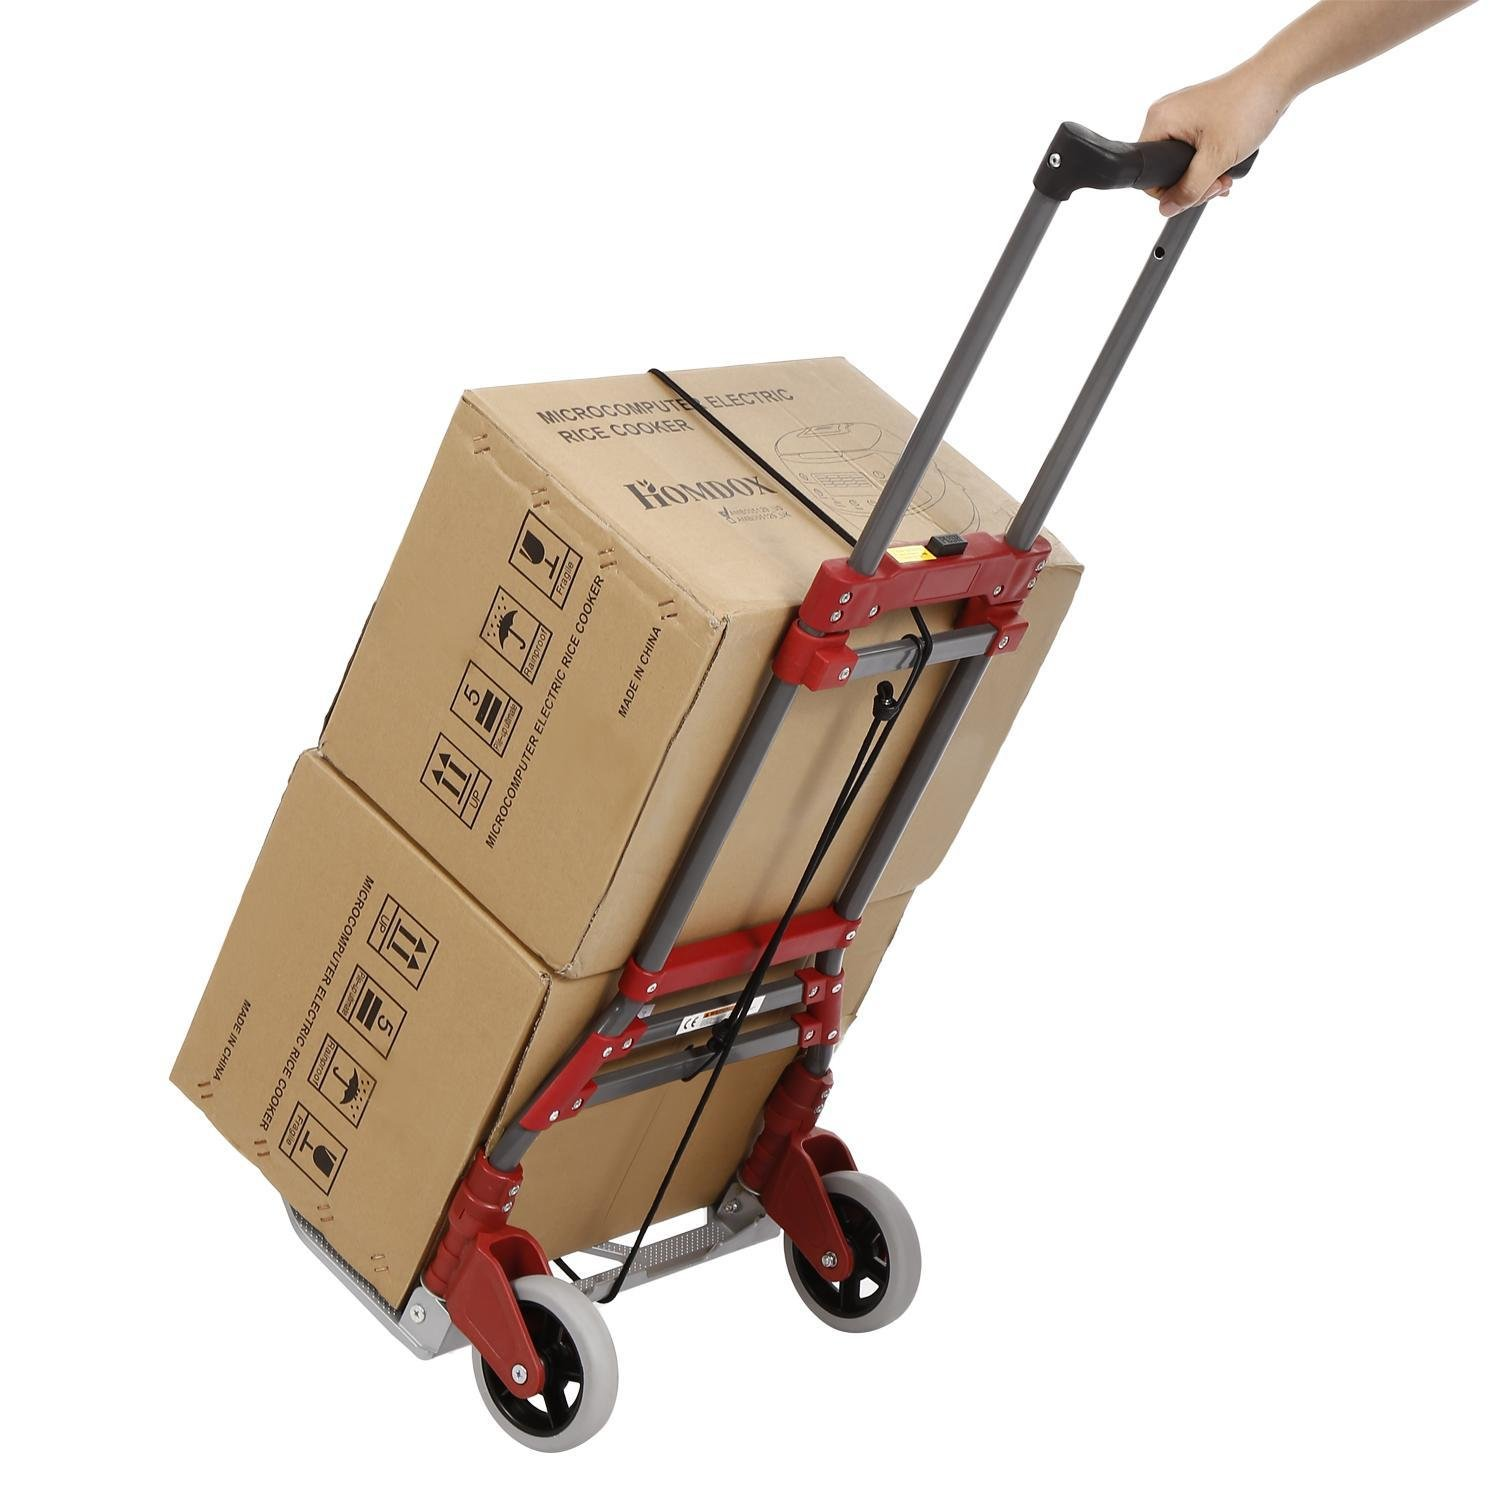 165 lb Capacity Aluminum Folding Telescoping Dolly Hand Truck, Portable Multi-Position Heavy Duty Luggage Carts with Bungee Cord-Red